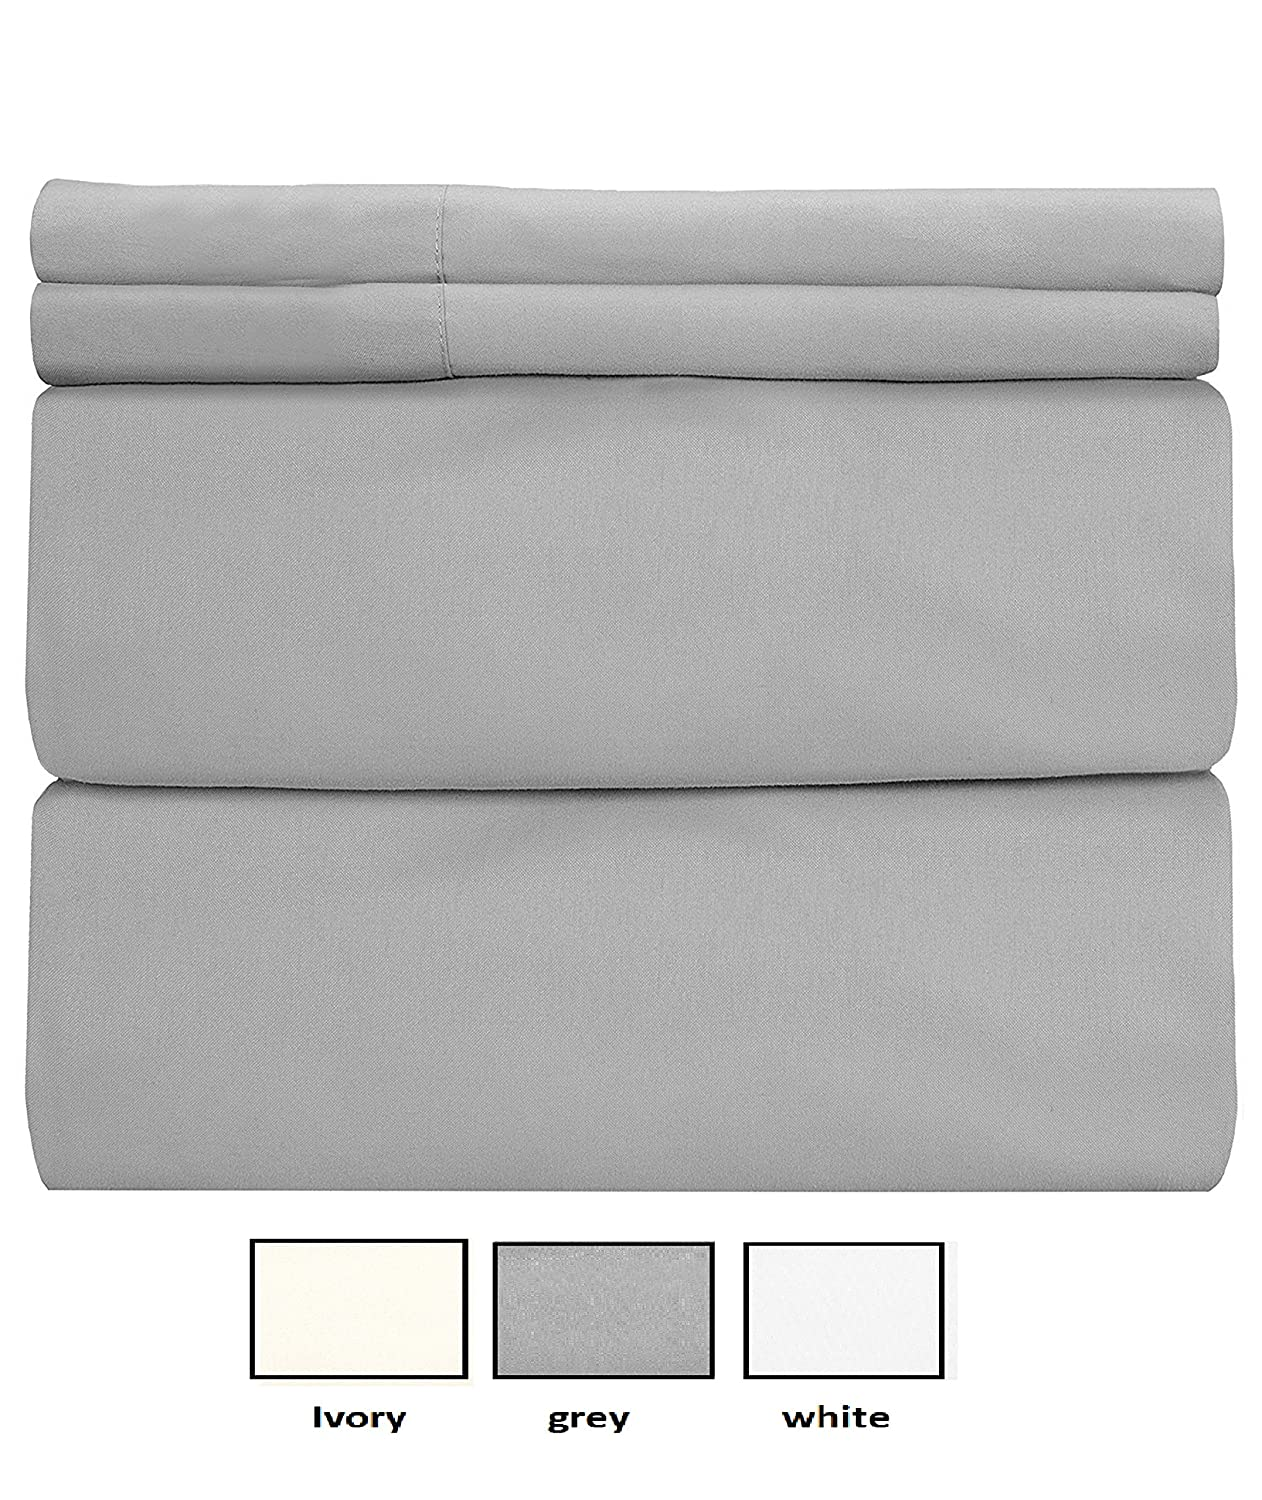 "COT PRINTS 400 Thread Count 100% Cotton Sheet Set, Queen Sheets Set, 4-Piece Long-staple Combed cotton sheets, Bedsheet set, Breathable Soft, Silky Sateen Weave, 14"" deep pocket (Grey)"